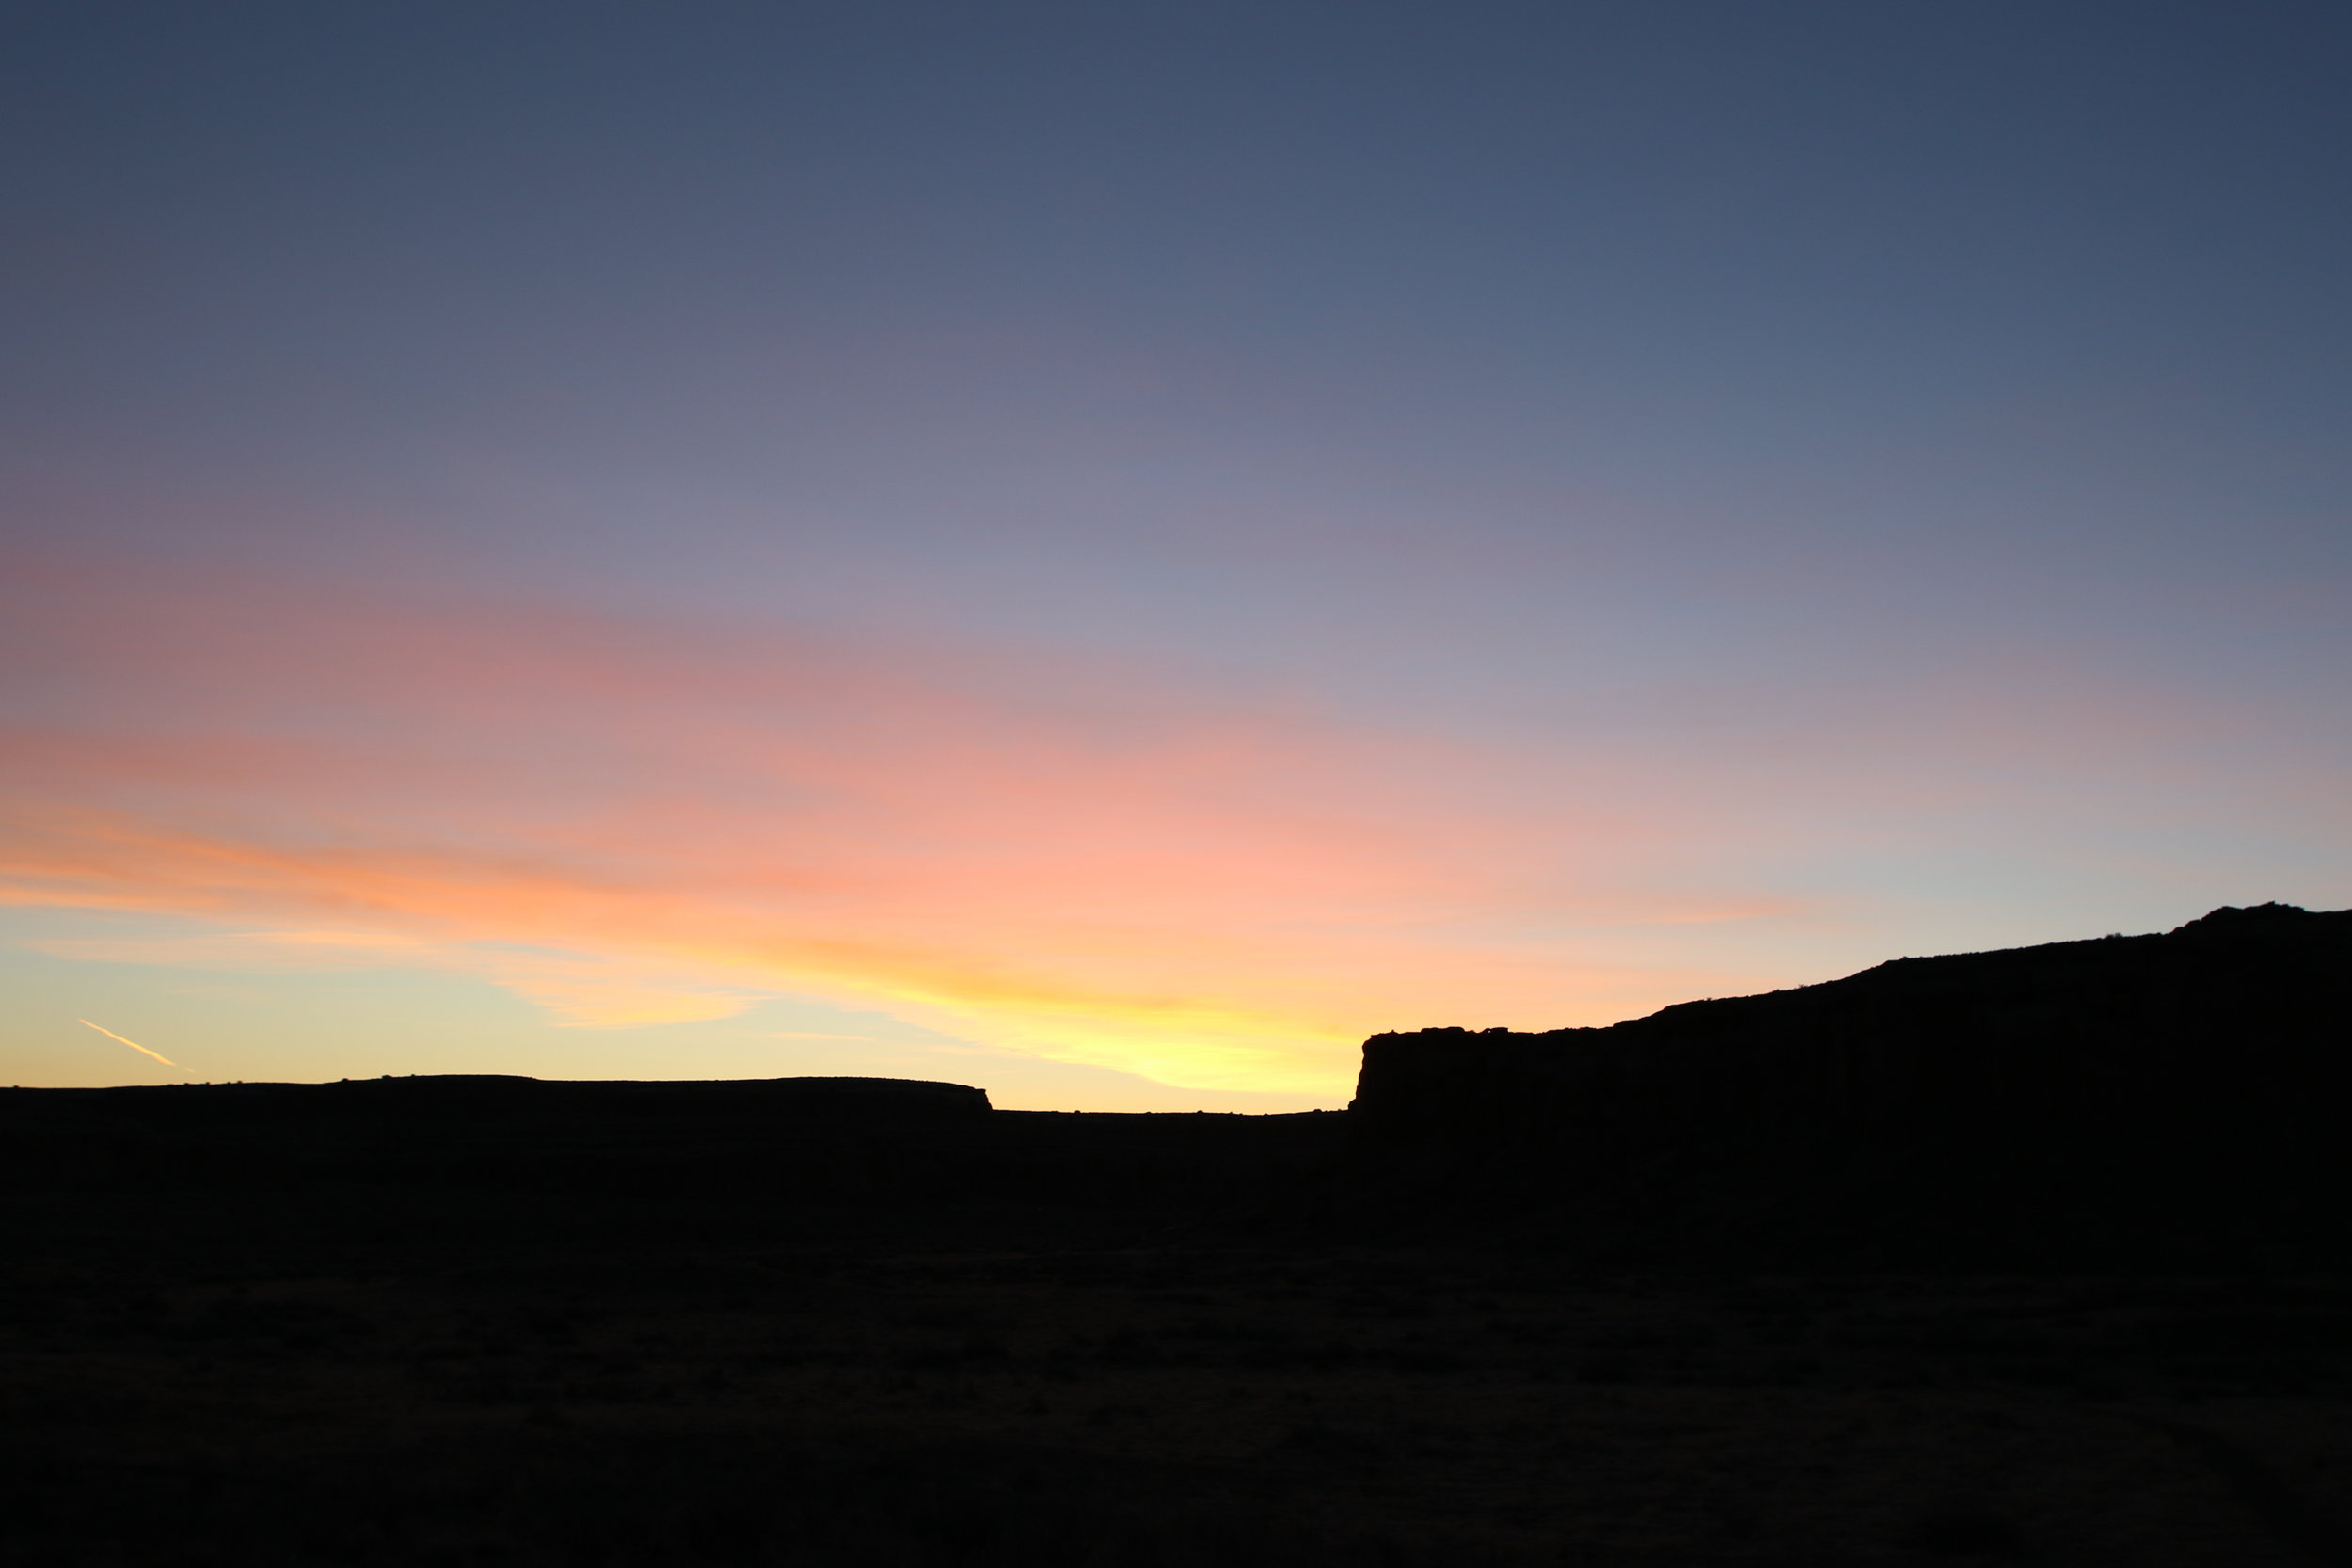 Spring Equinox sunrise at Chaco Culture National Historical Park